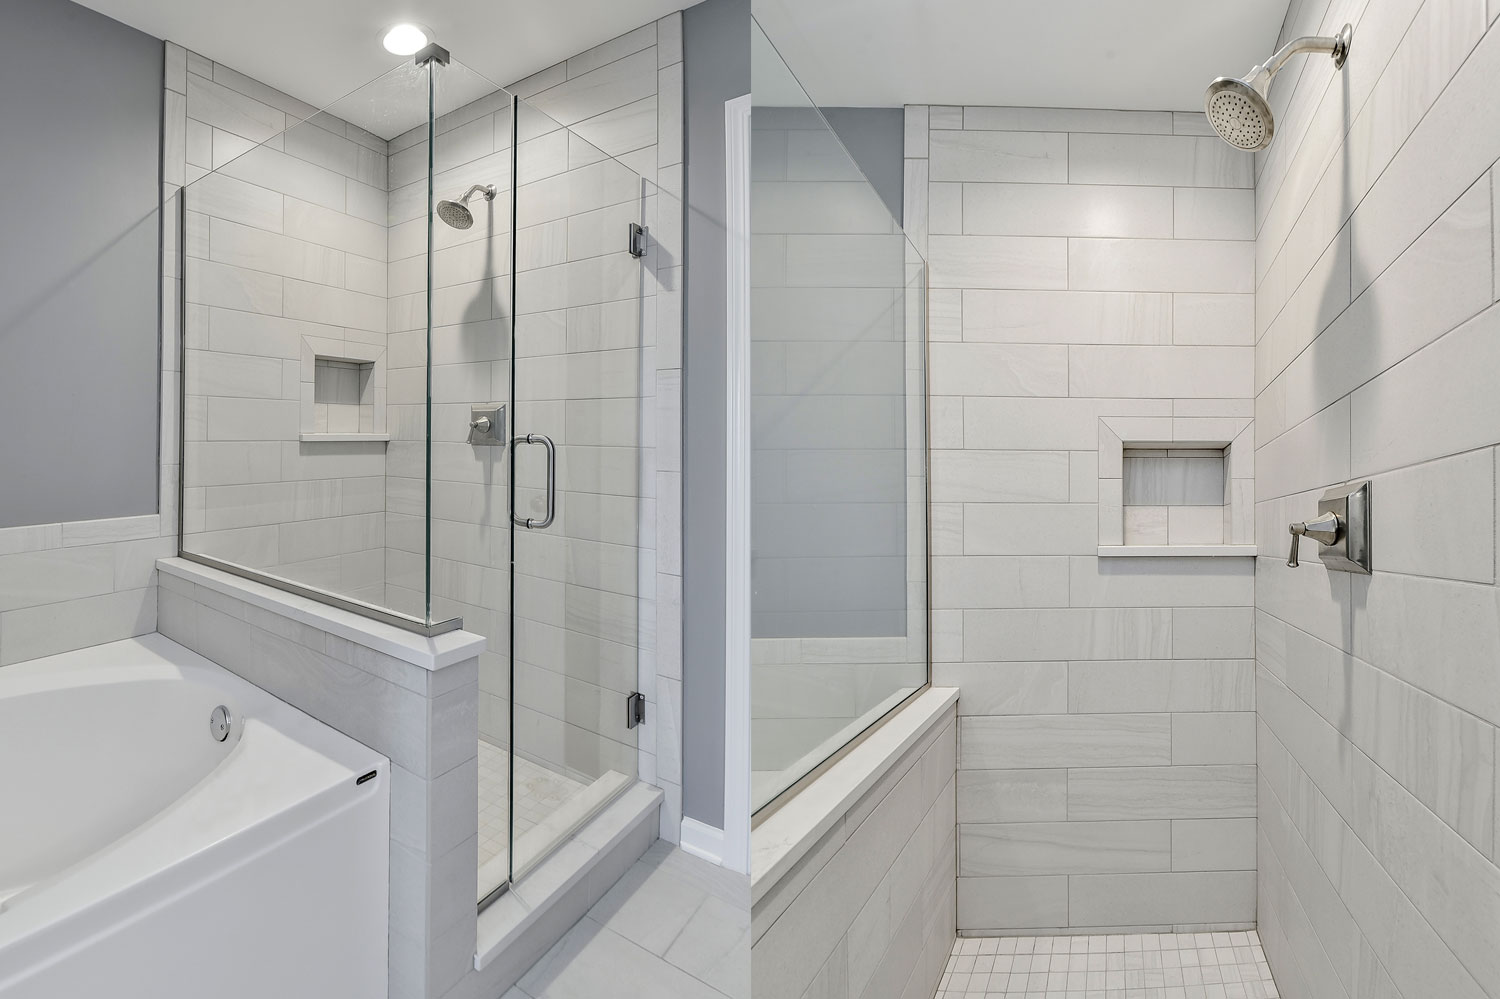 Pete mary 39 s master bathroom remodel pictures home for Bathroom remodeling services